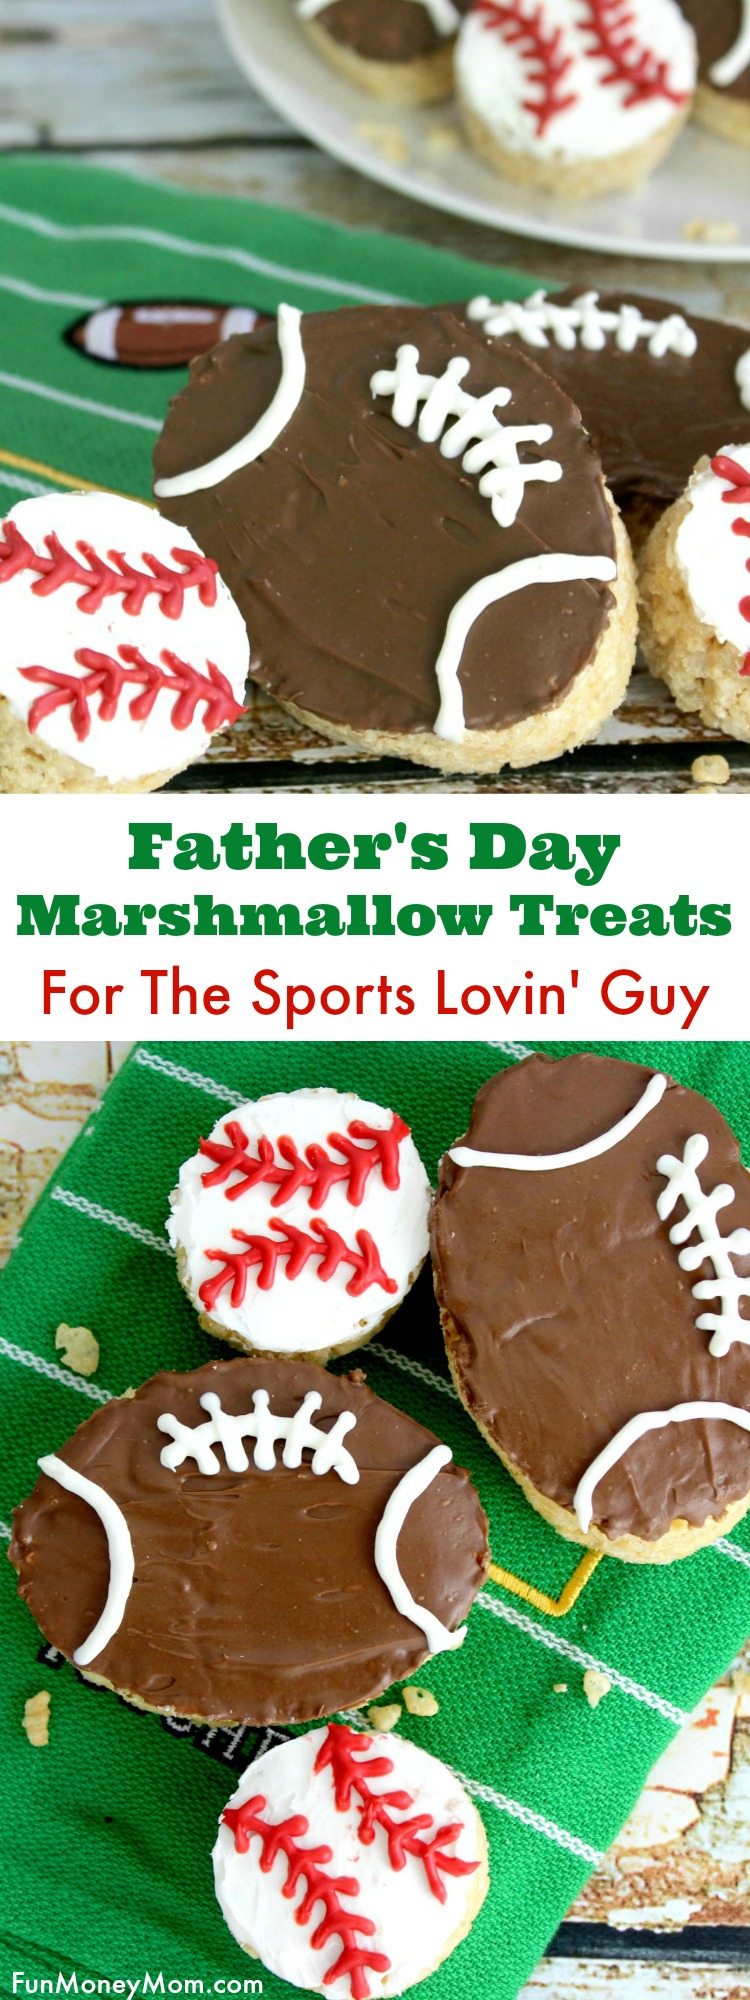 Best Father's Day Treat For The Sports Loving Dad - Fun ...